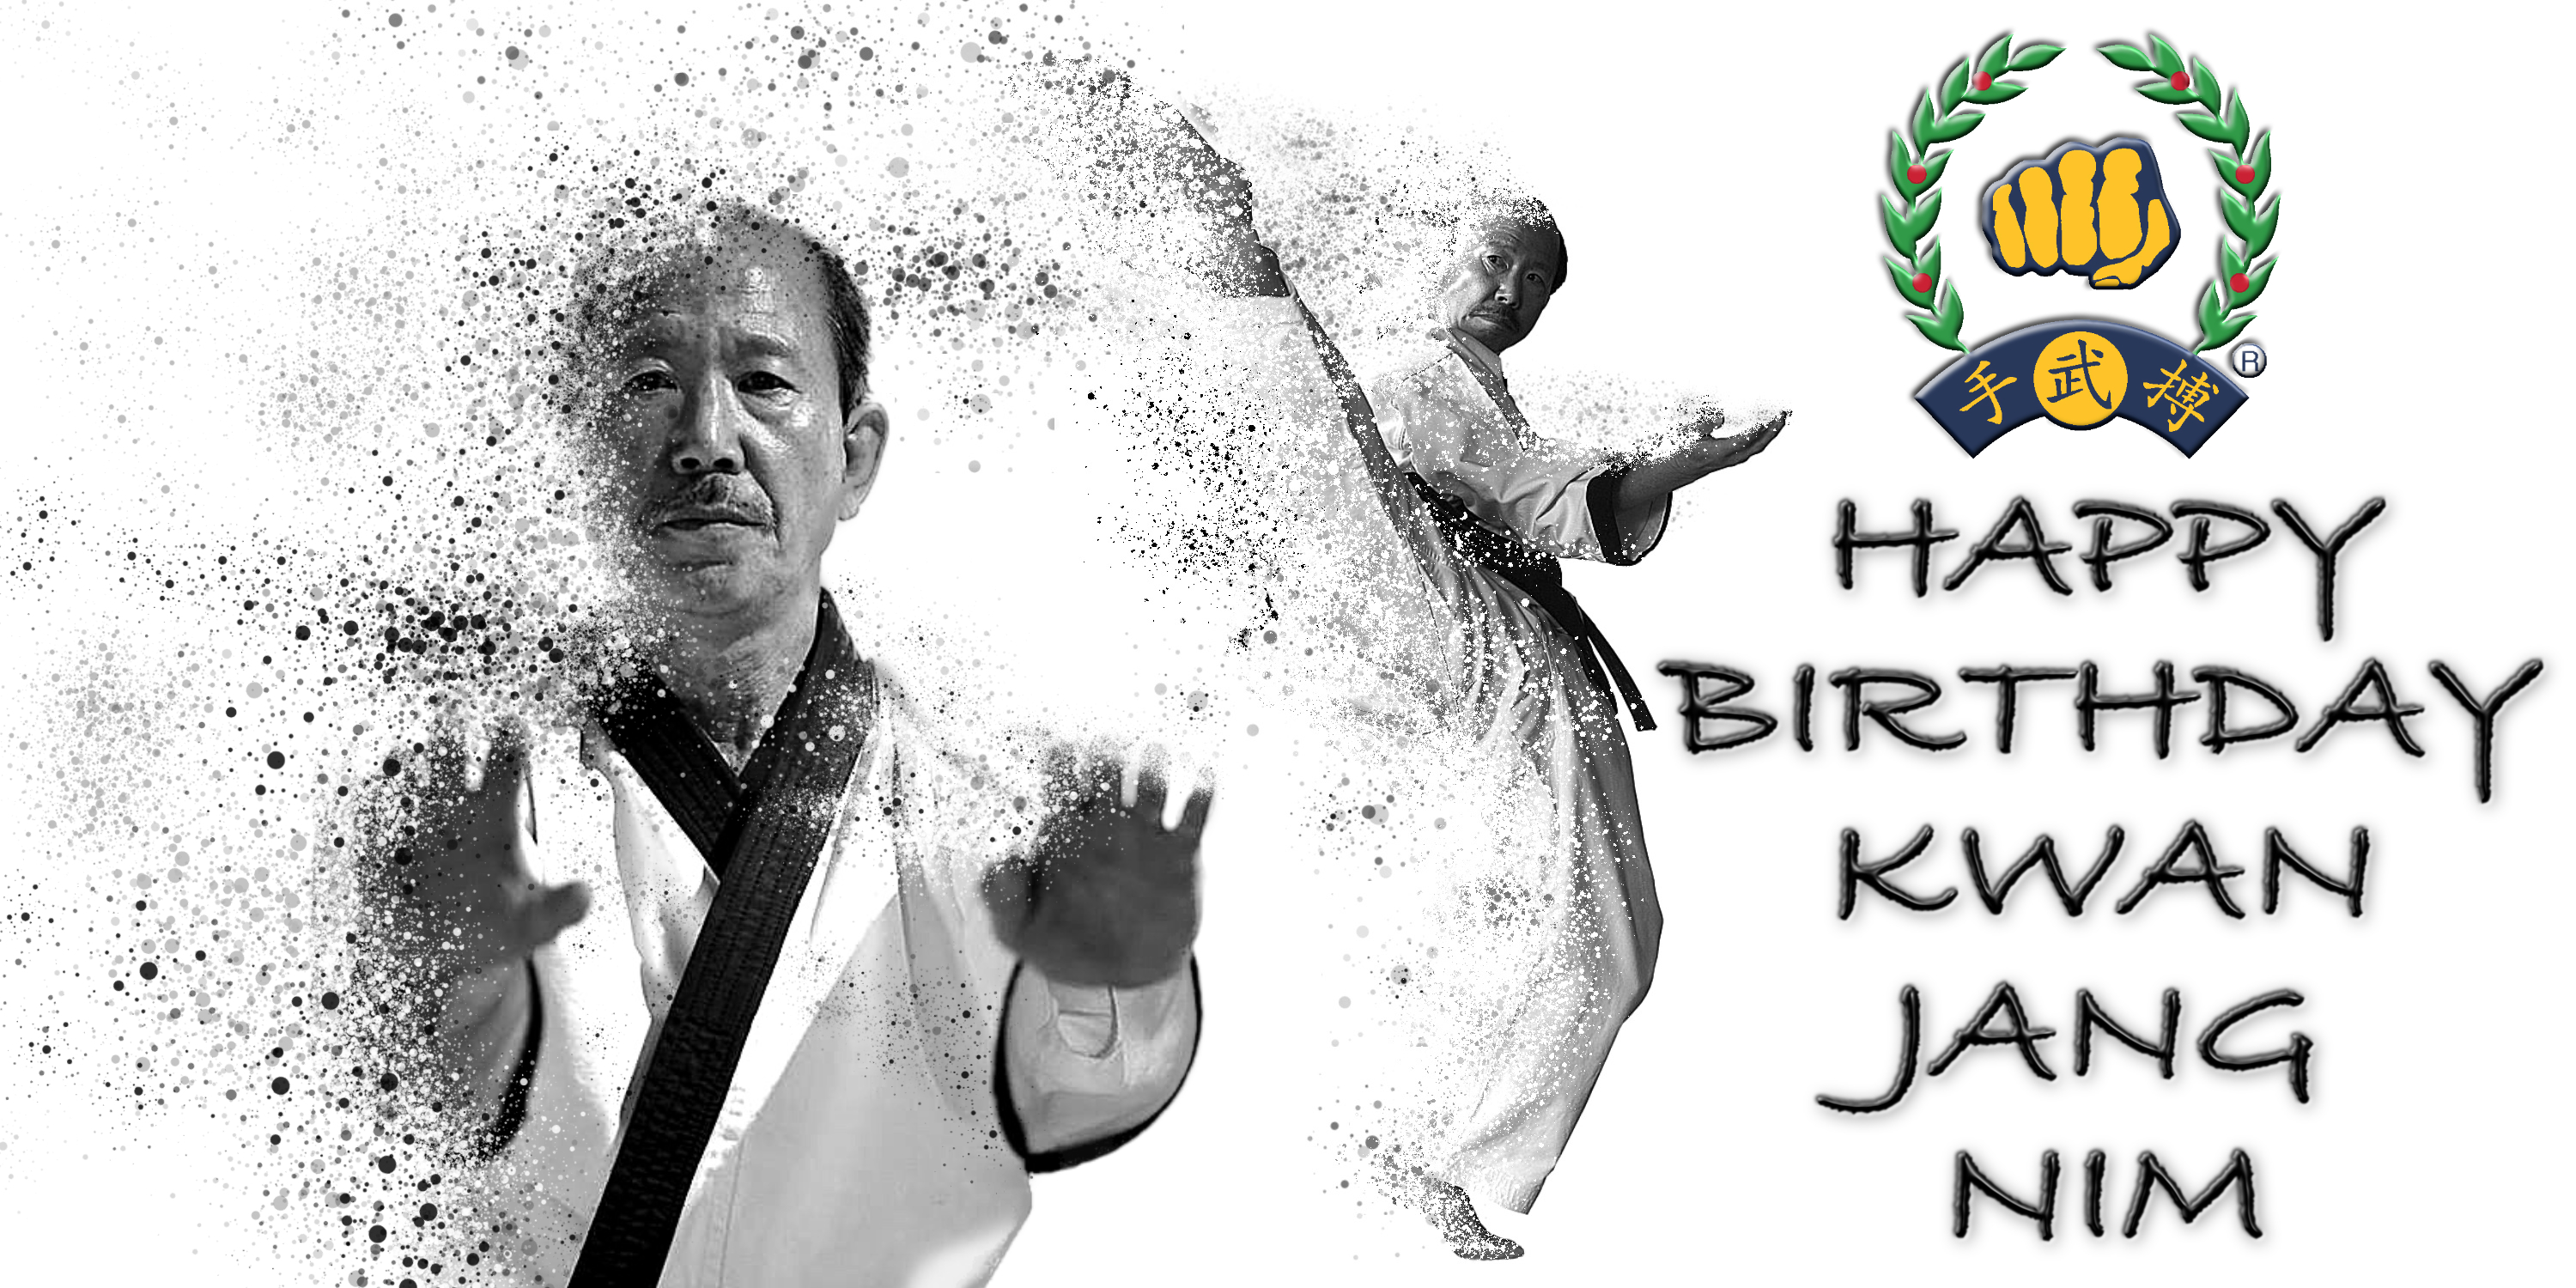 UK Soo Bahk Do  Kwan Jang Nim Birthd